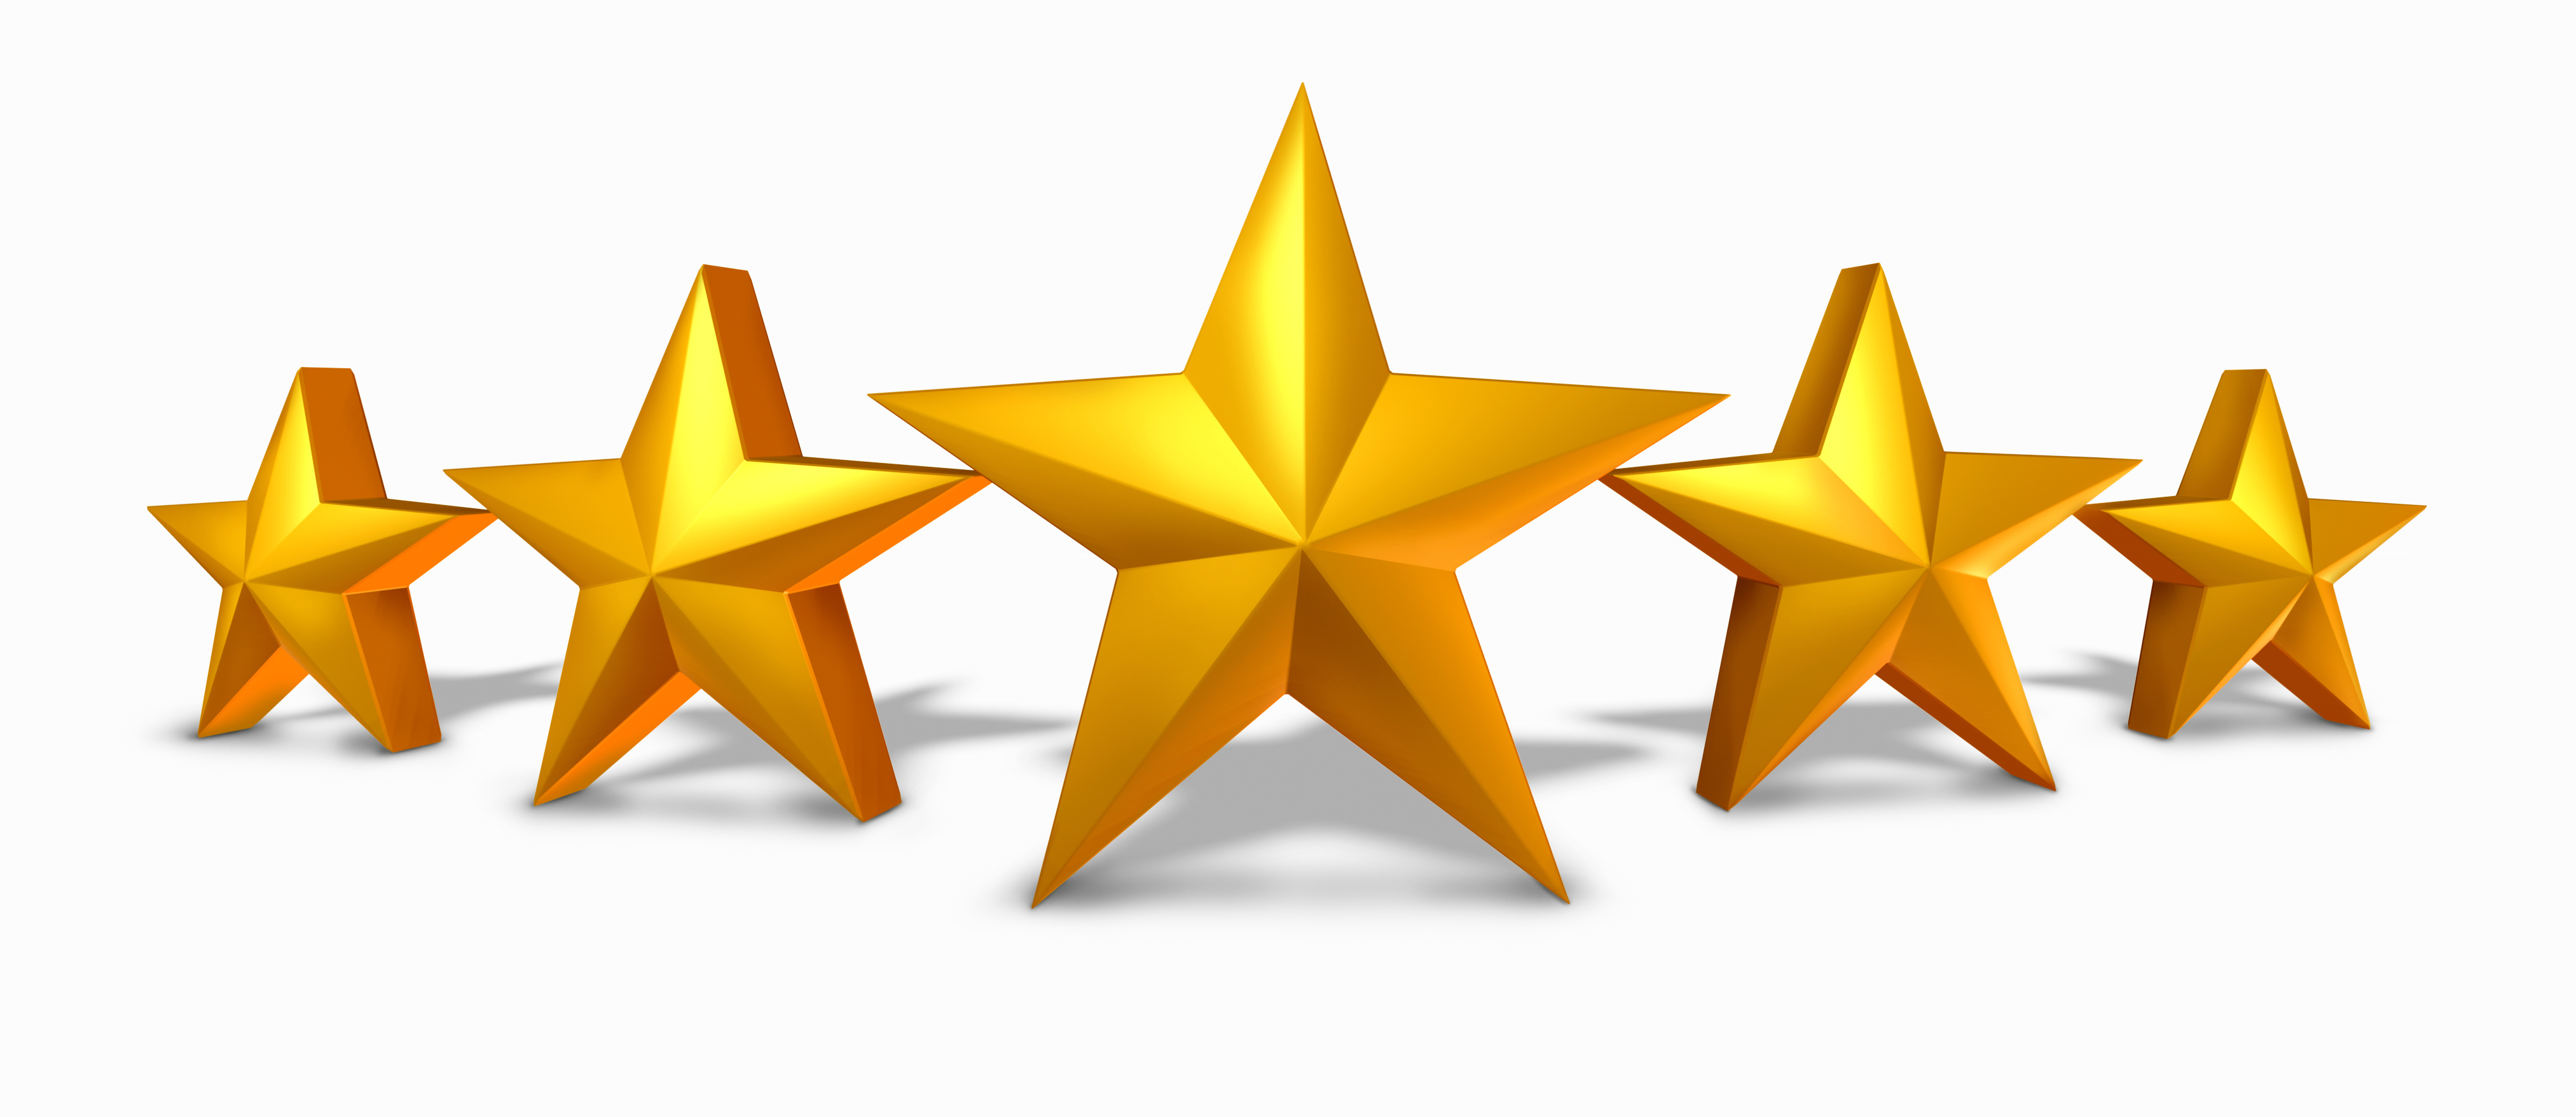 Gold star rating with five golden stars representing an award of excellence and luxury as a symbol and concept of competition success and best quality with a white background.